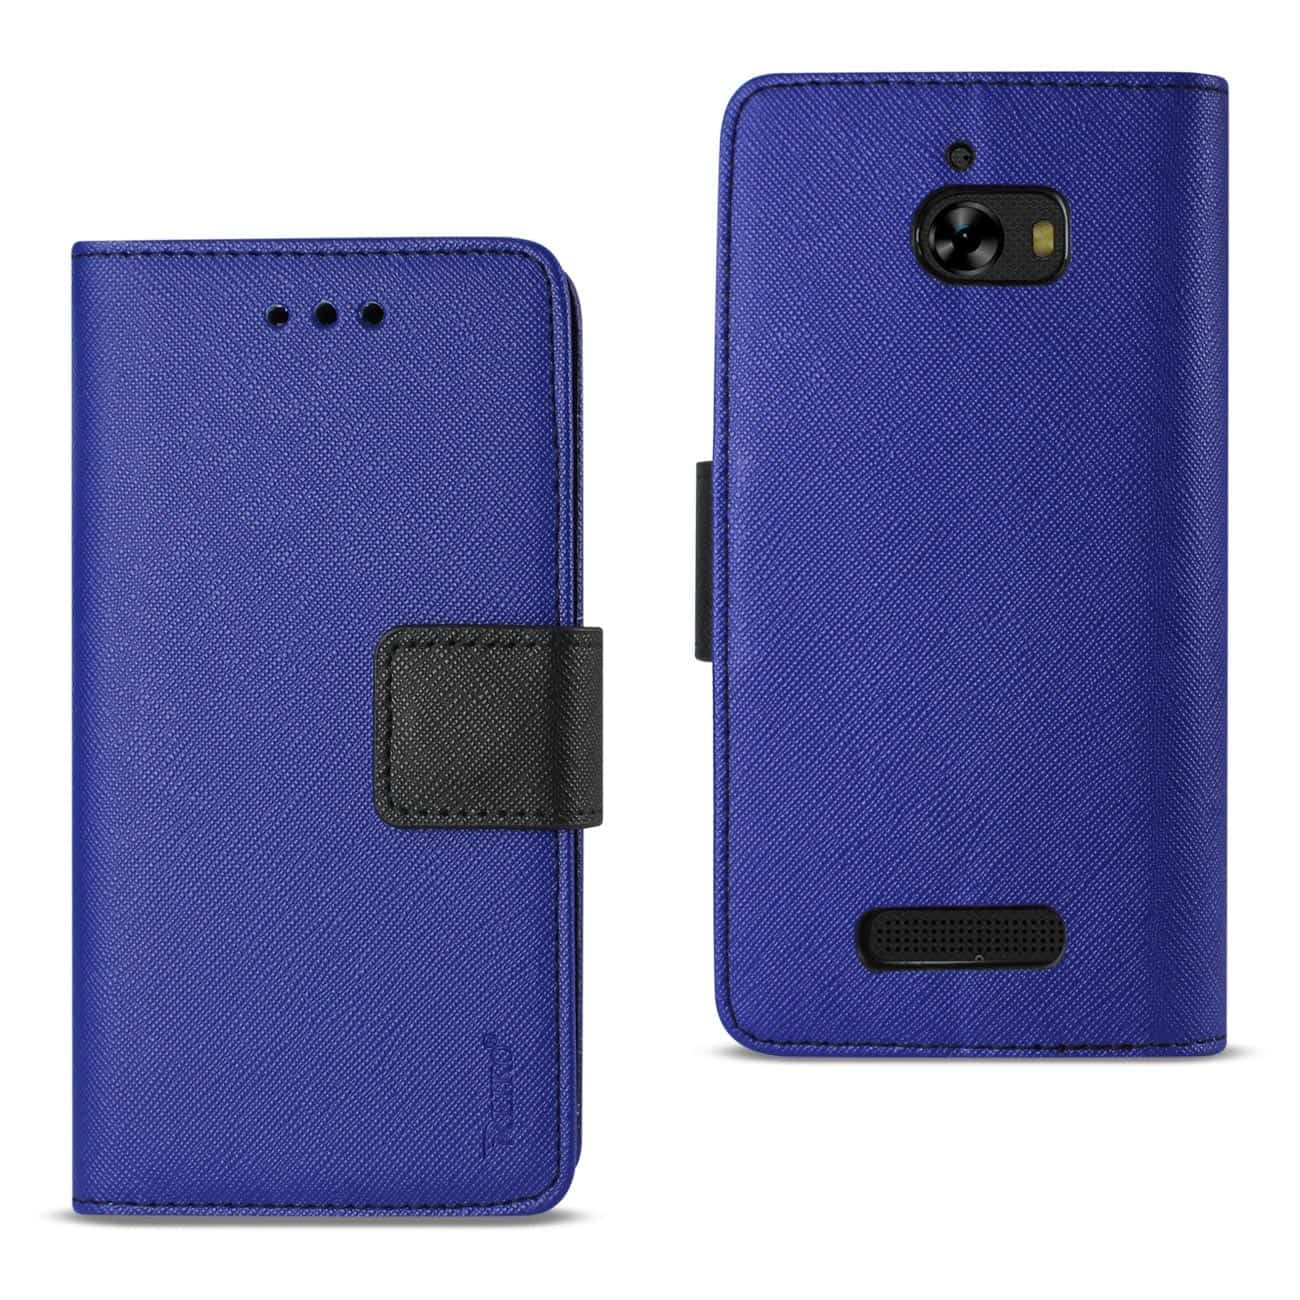 COOLPAD DEFIANT 3-IN-1 WALLET CASE IN NAVY